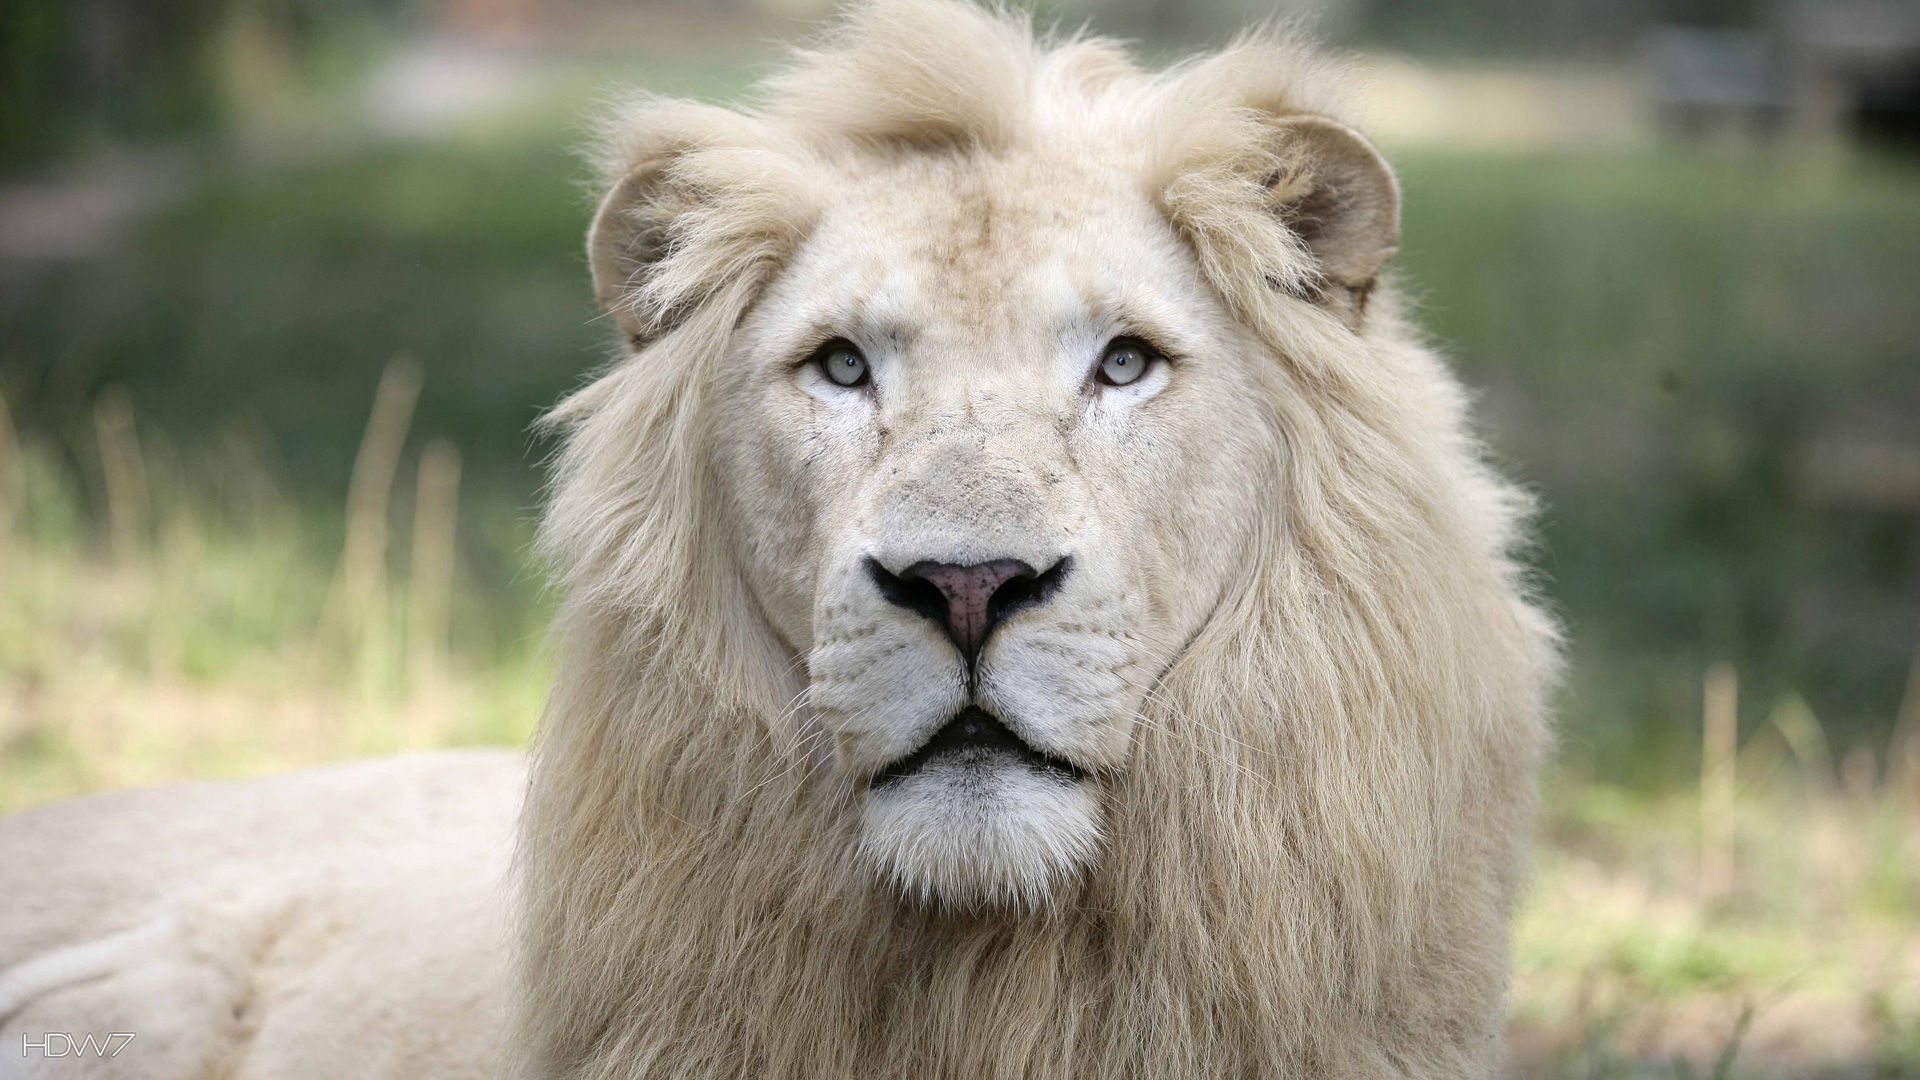 A White Lion At Jungle Island Hd Wallpaper Gallery 213